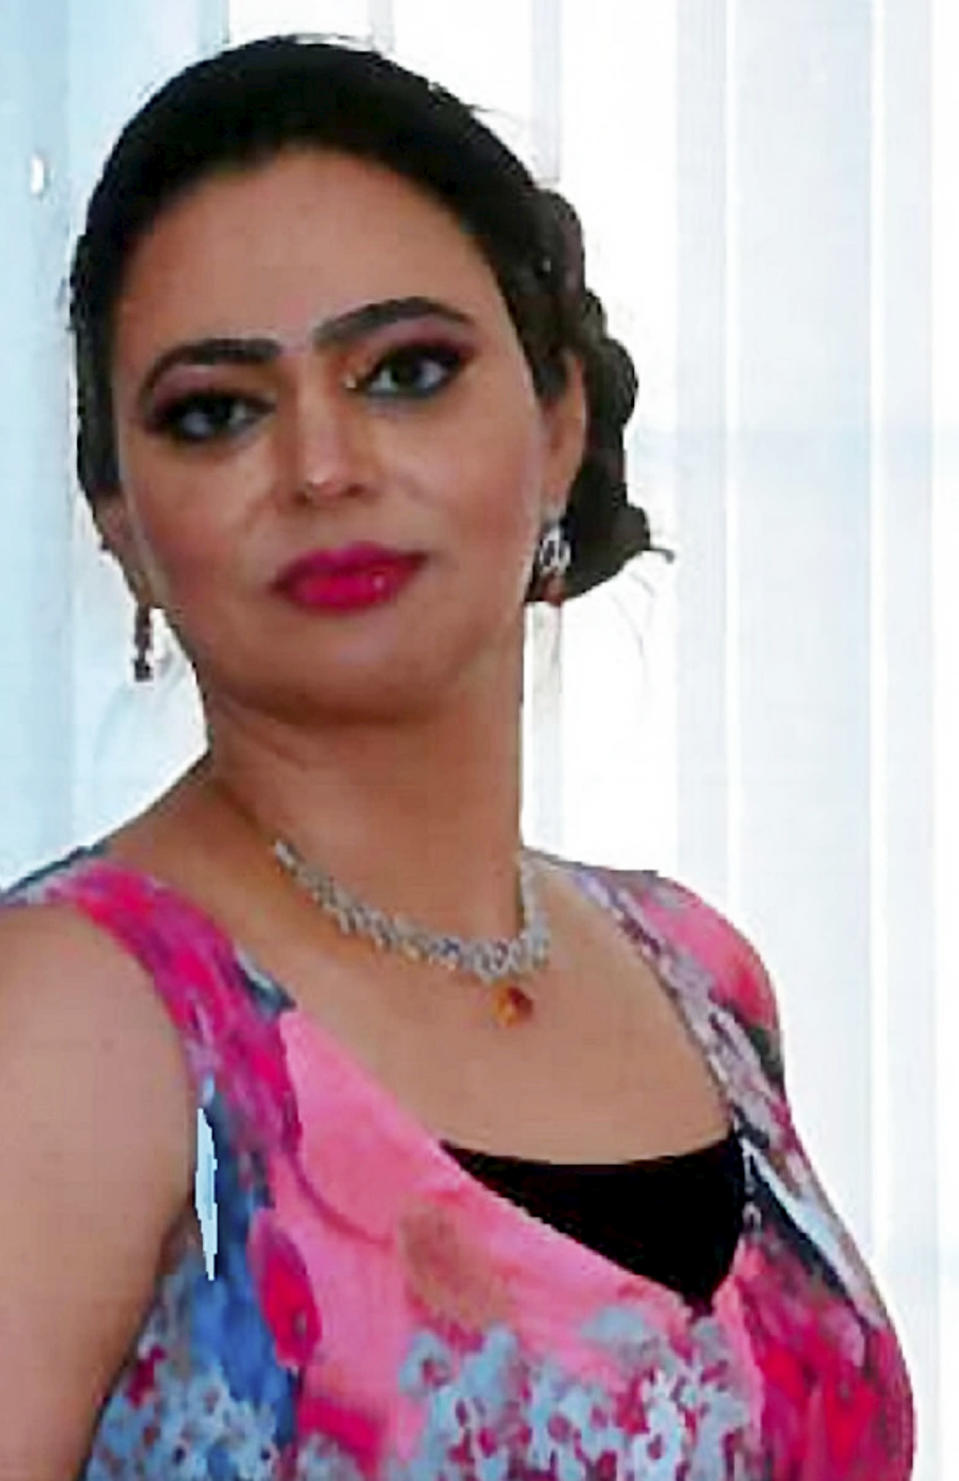 Police have launched an investigation into Mrs Kaur's death (SWNS)